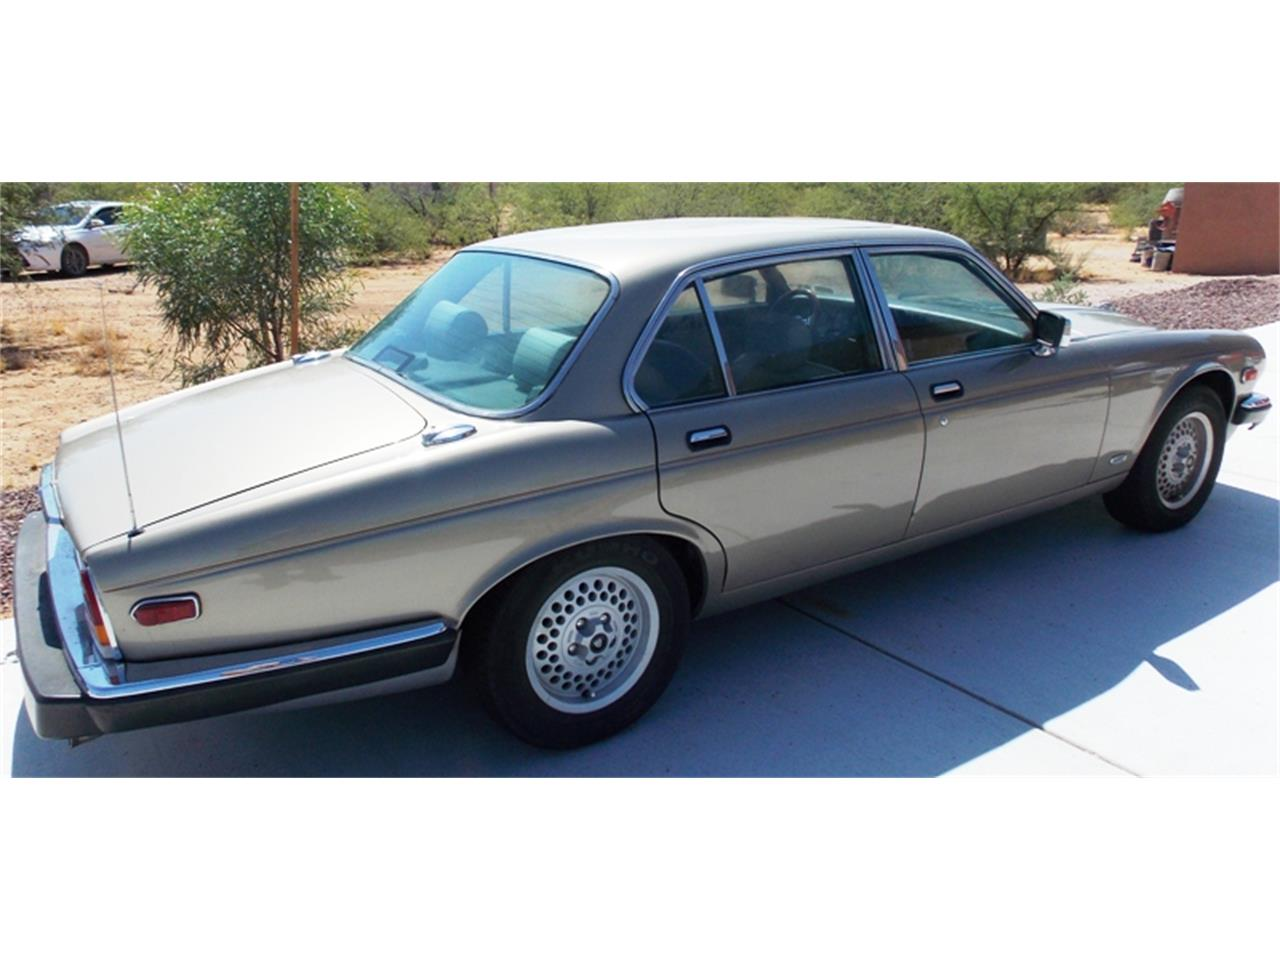 Large Picture of '86 XJ6 - $7,500.00 - QNNV